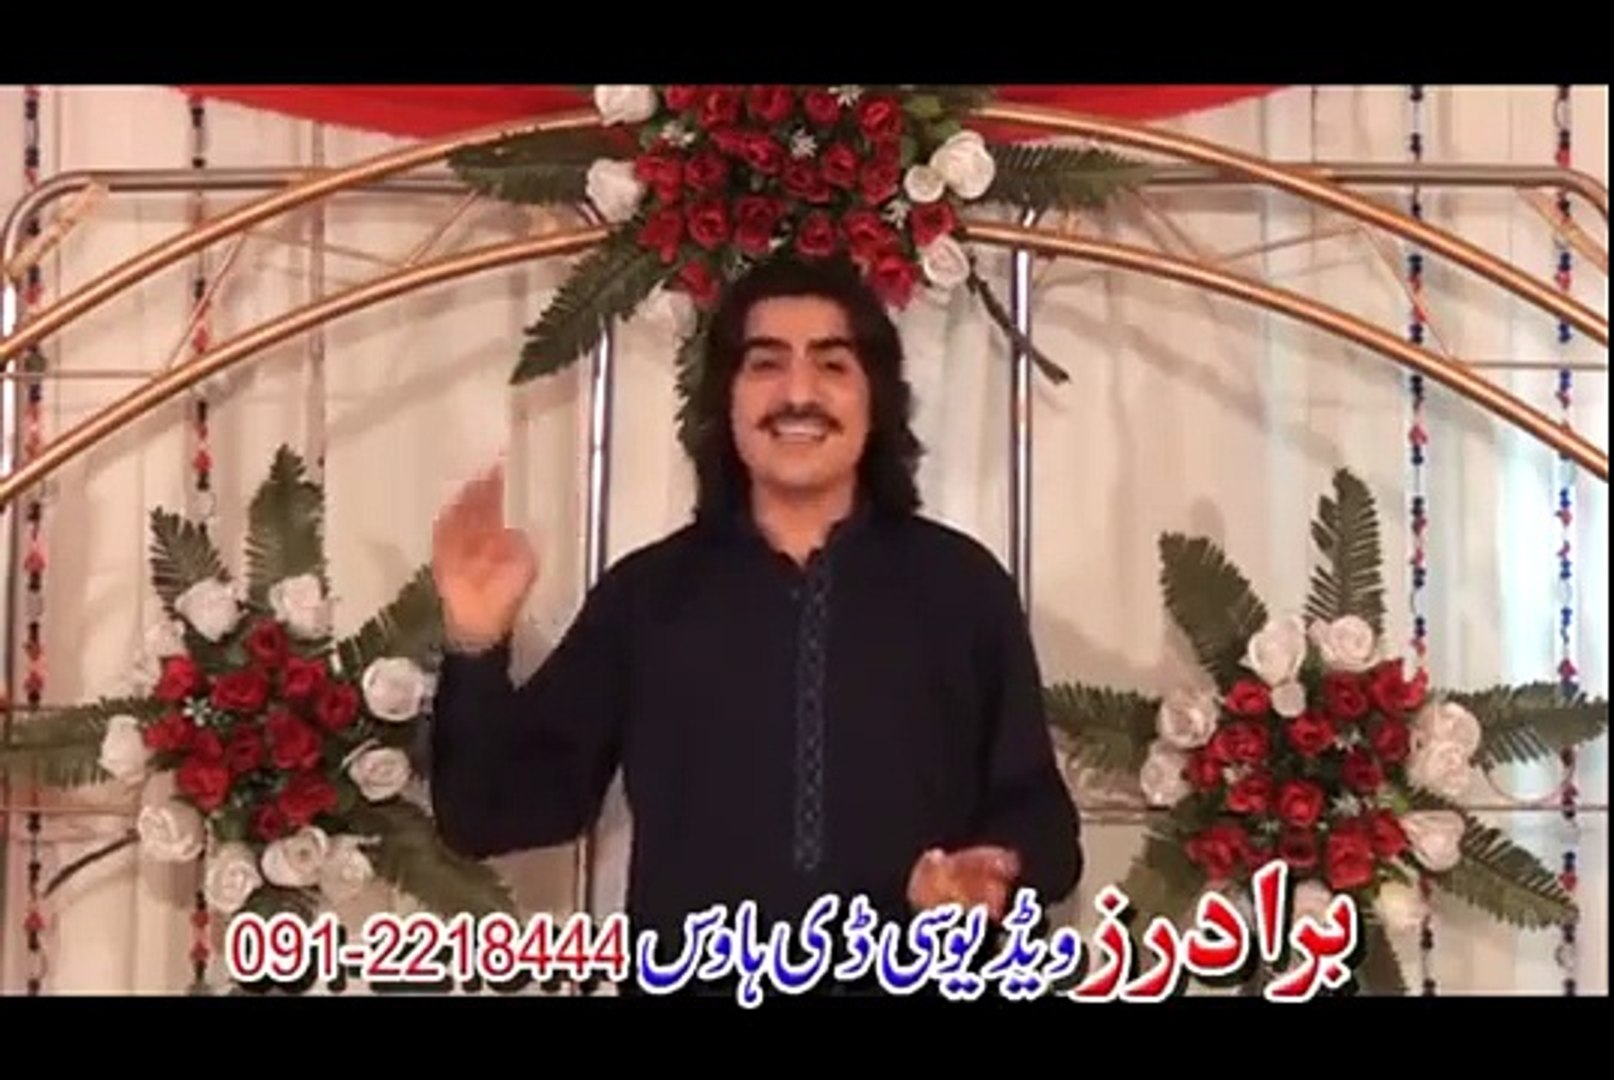 Da Kali Kada Ma Wora -- Sadiq Afridi 2015 Song - Pashto New Song 2015 - Pashto Attan Song 2015